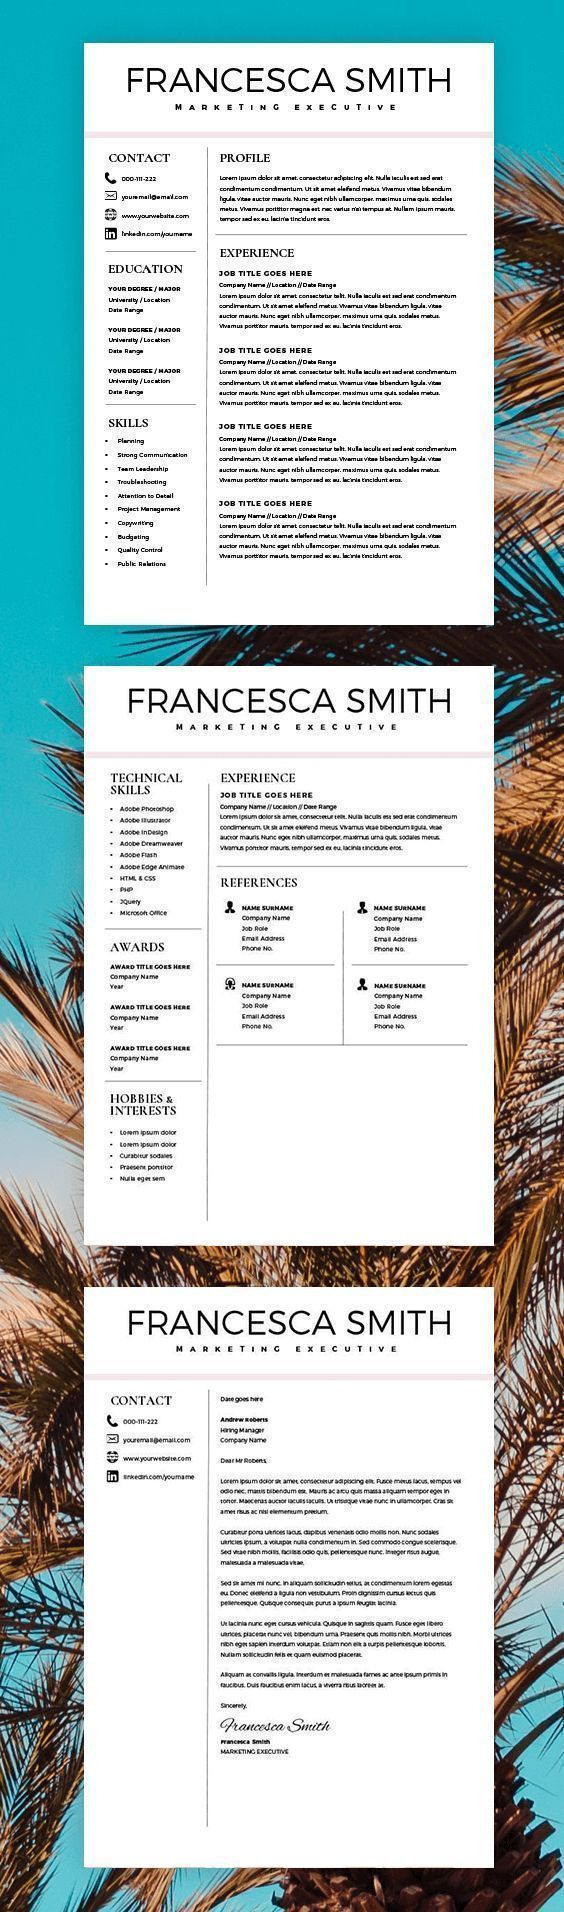 Best Cv  Resume Design Images On   Best Cv